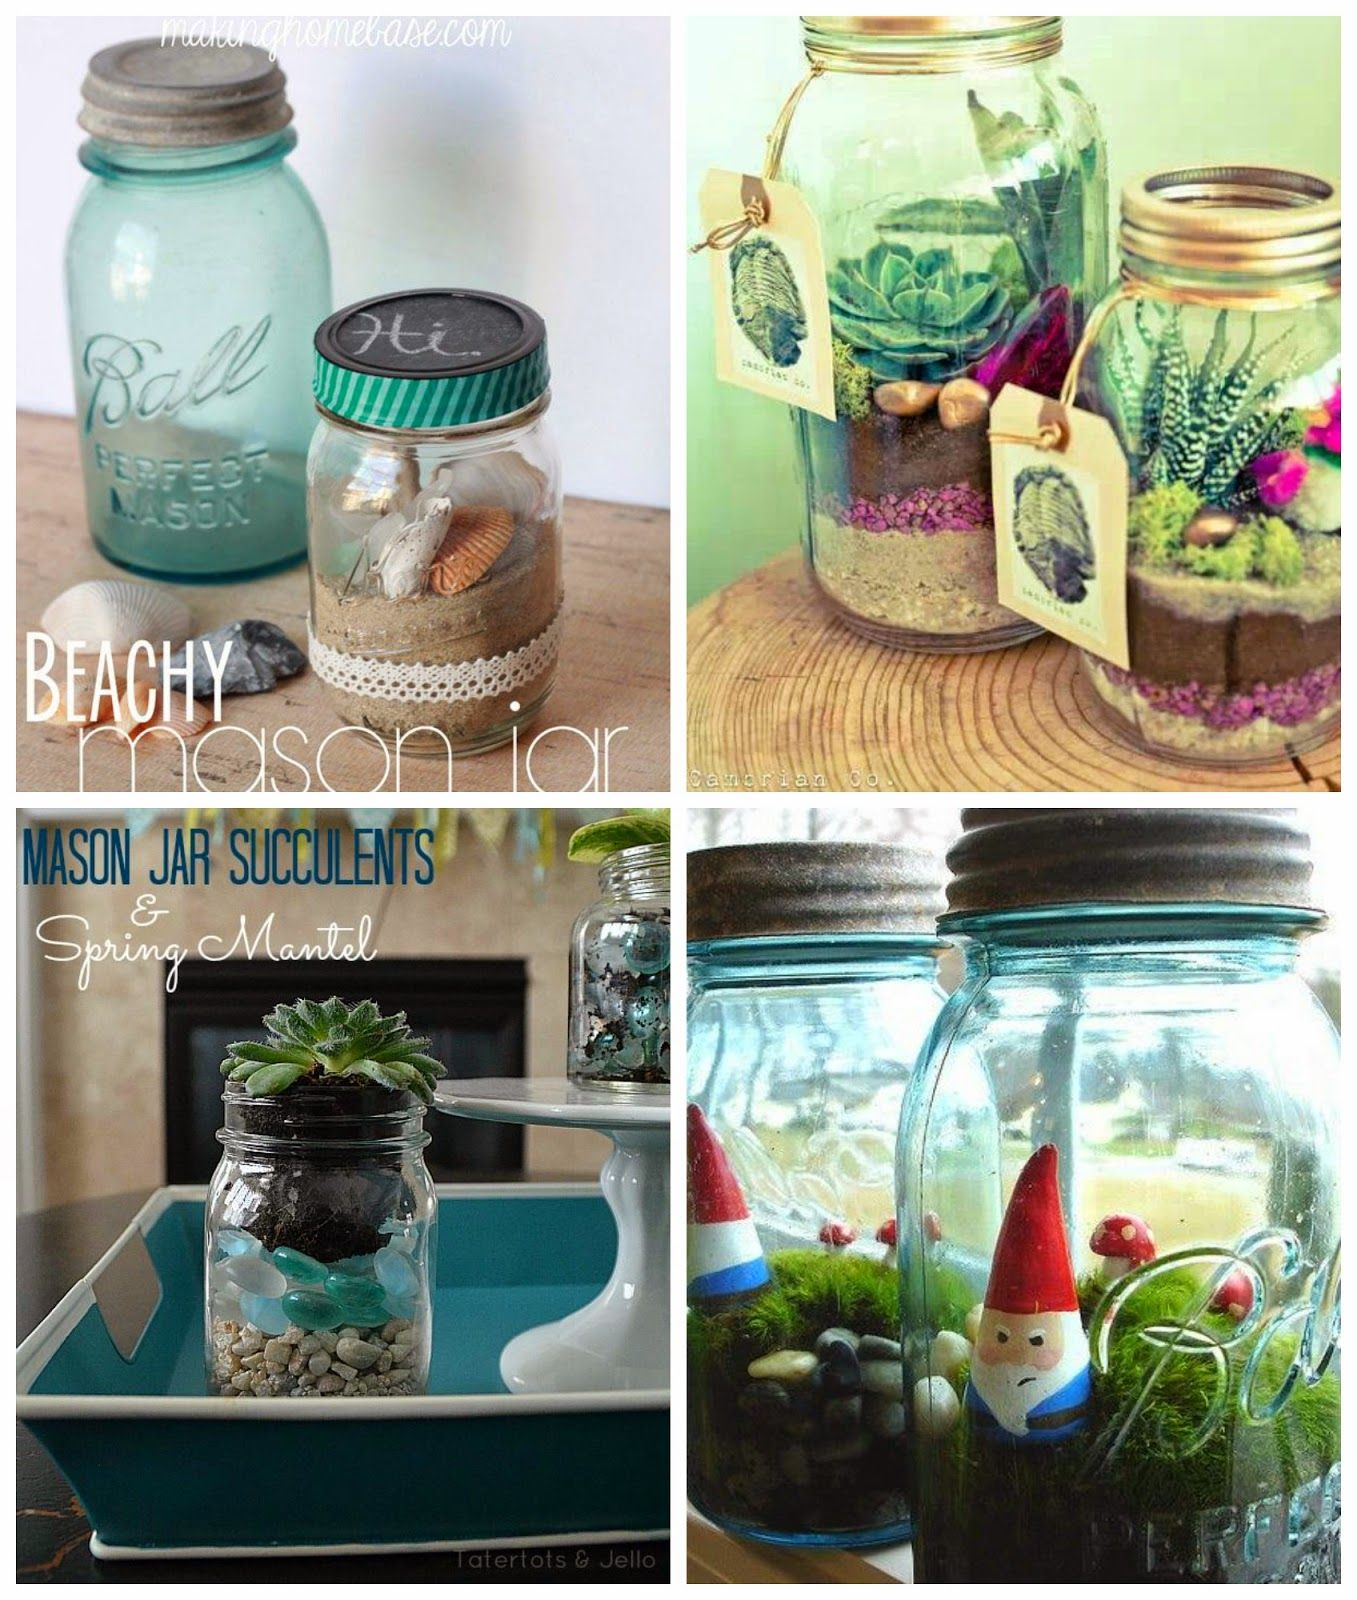 Home Design Ideas For Seniors: The World Around Her...: Fun And Creative Mason Jar Craft